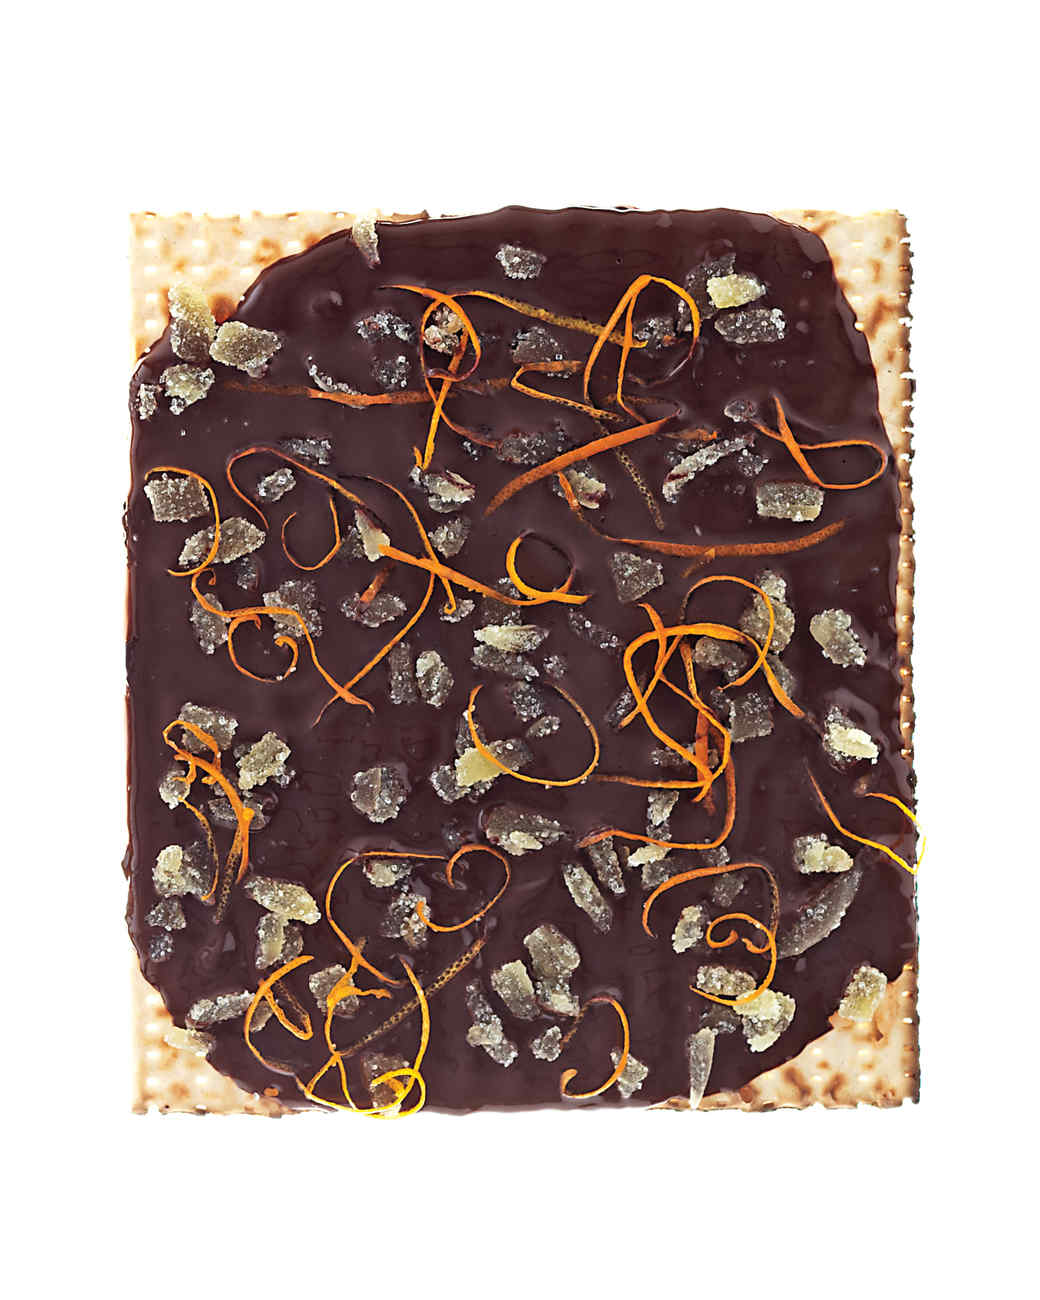 chocolate-matzo-b-mld109693.jpg